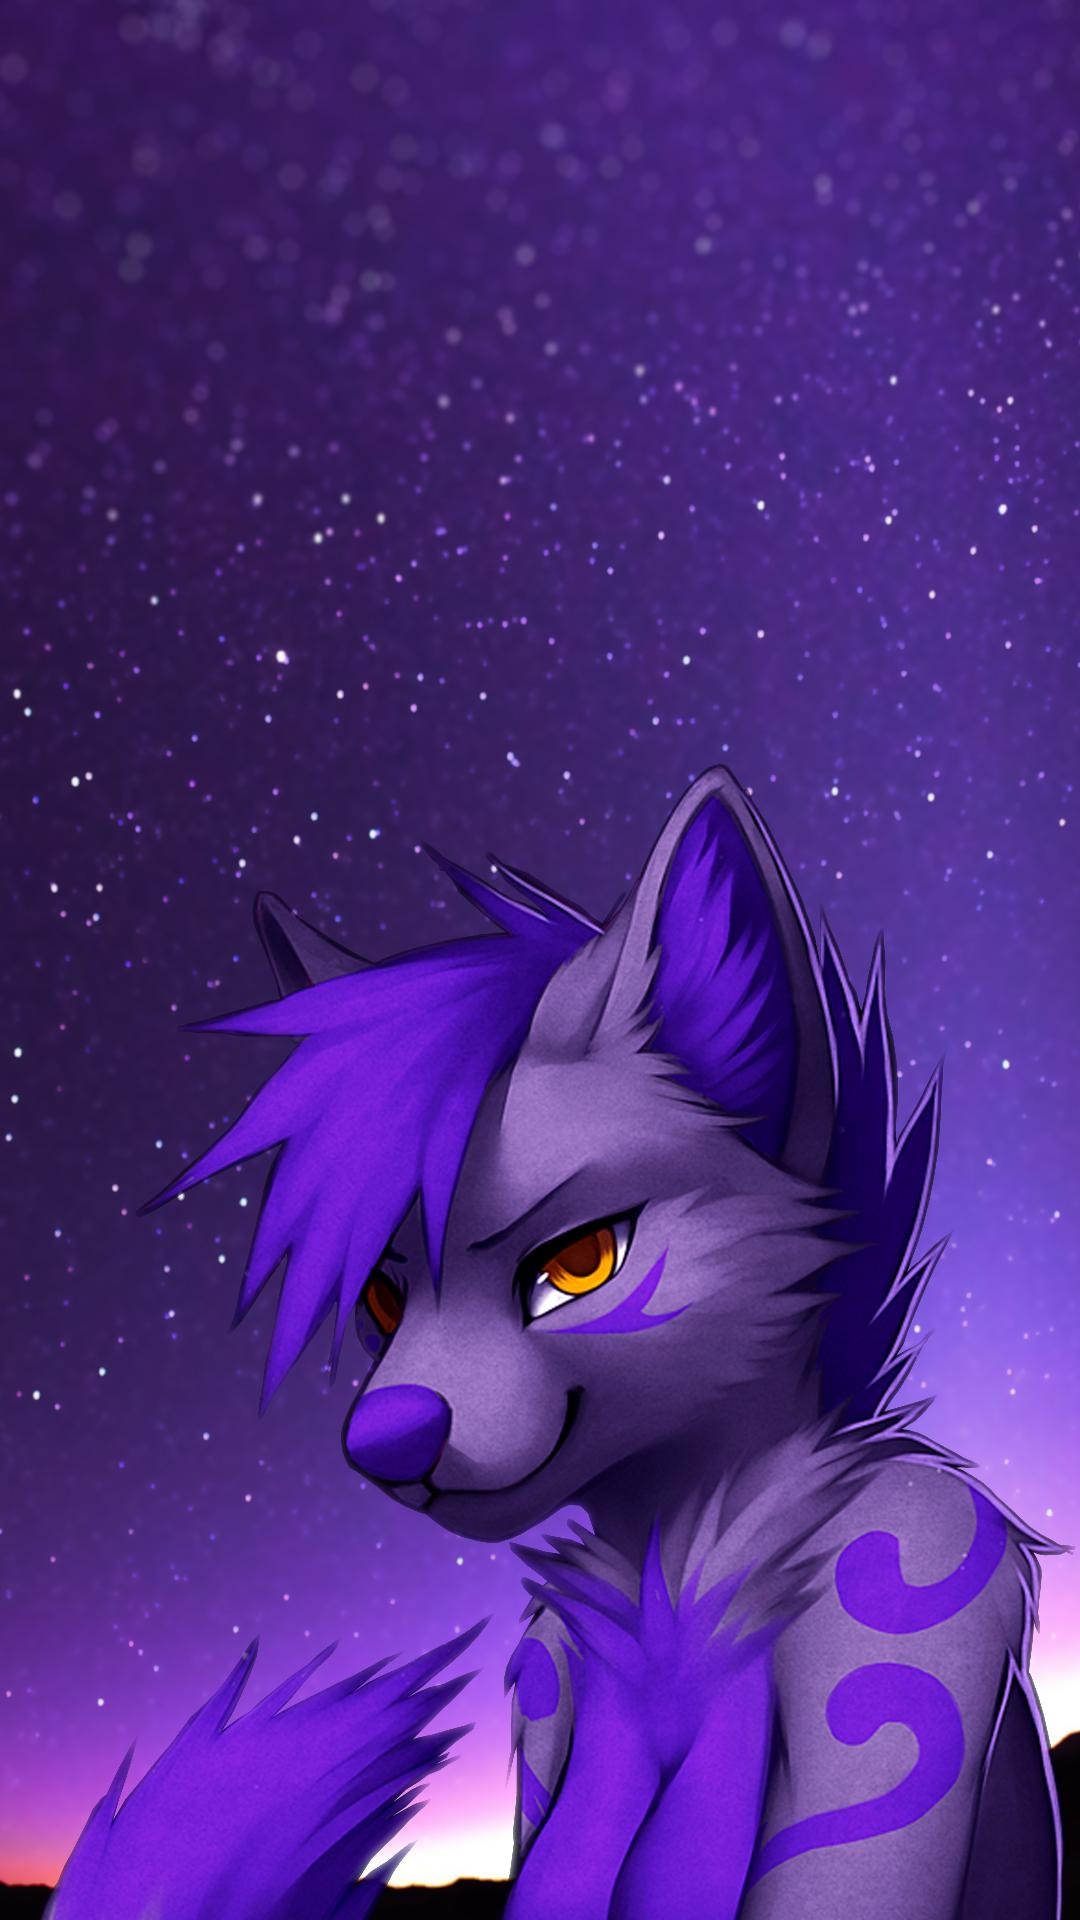 Furry Wallpaper Cell Phone Bestpicture1 Org